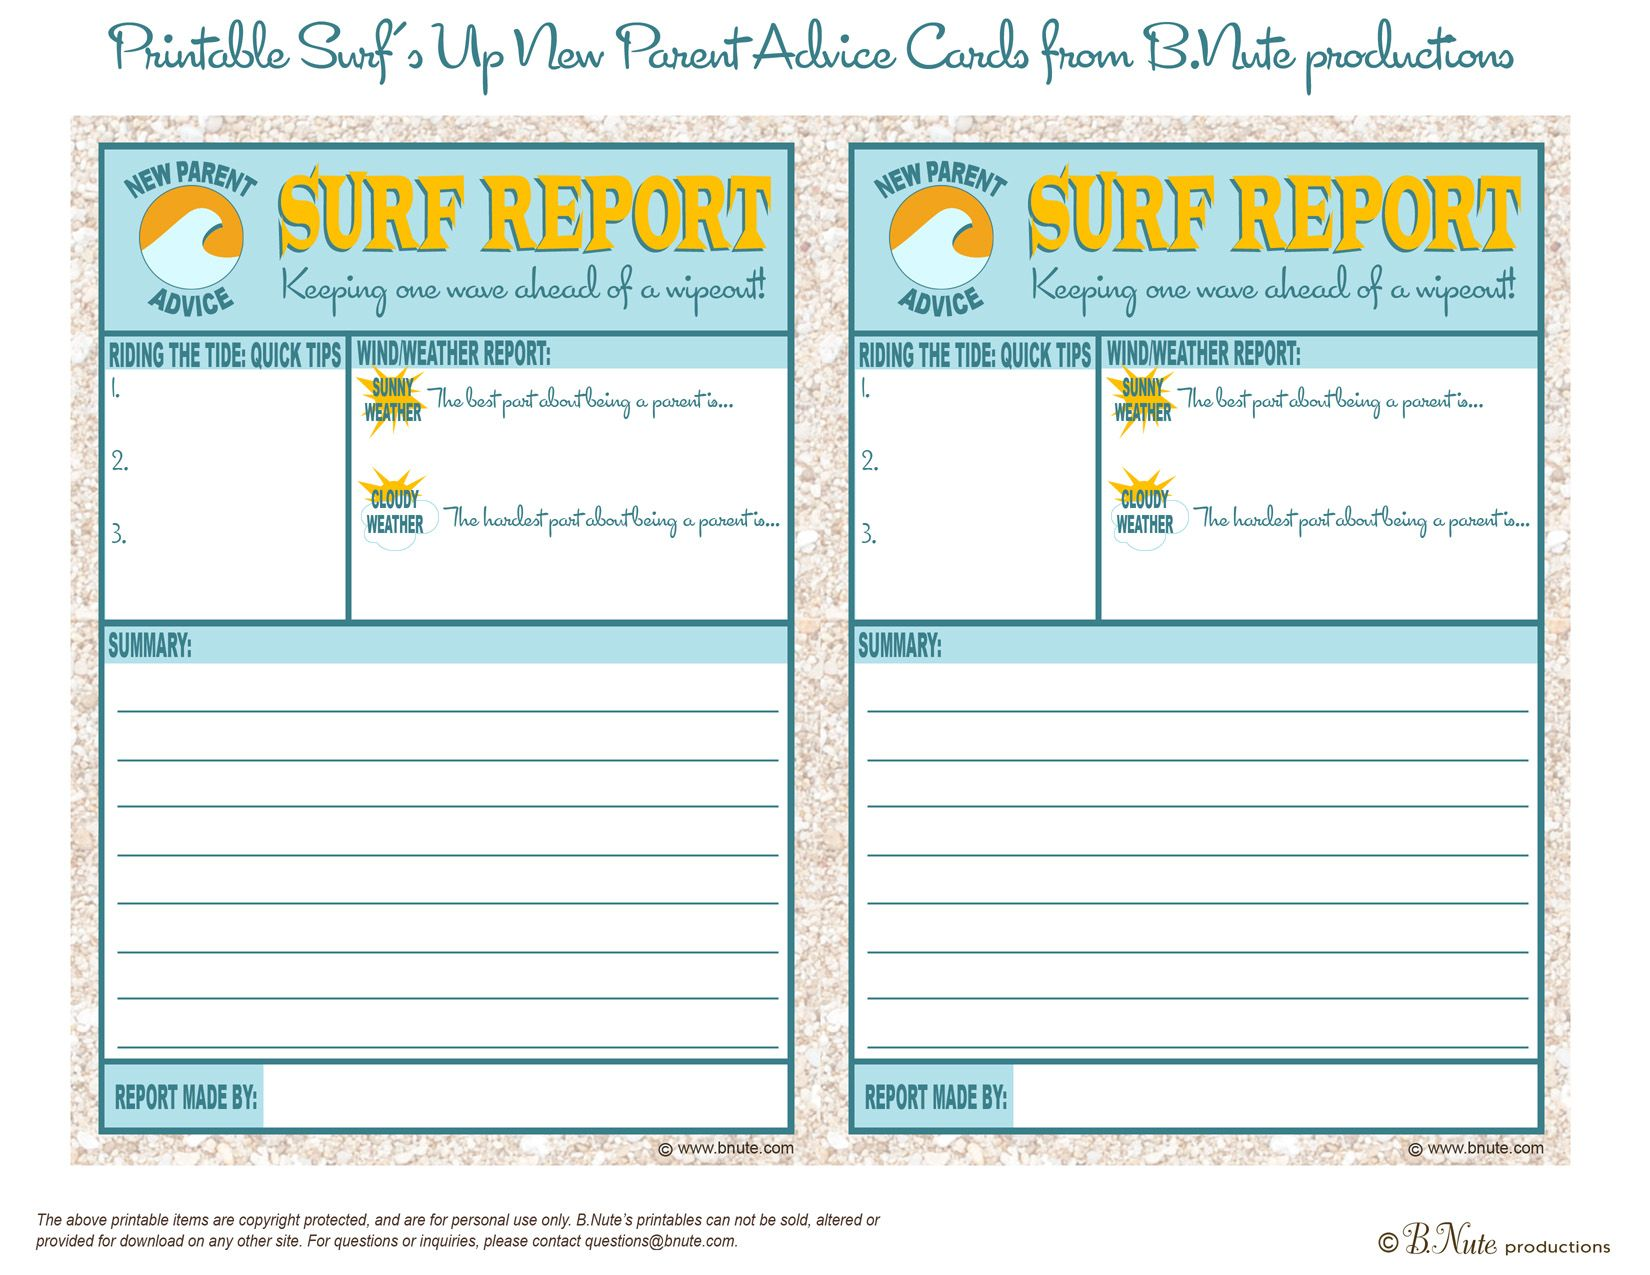 Free Printable Surf Report: New Parent Advice Card | Printables ...